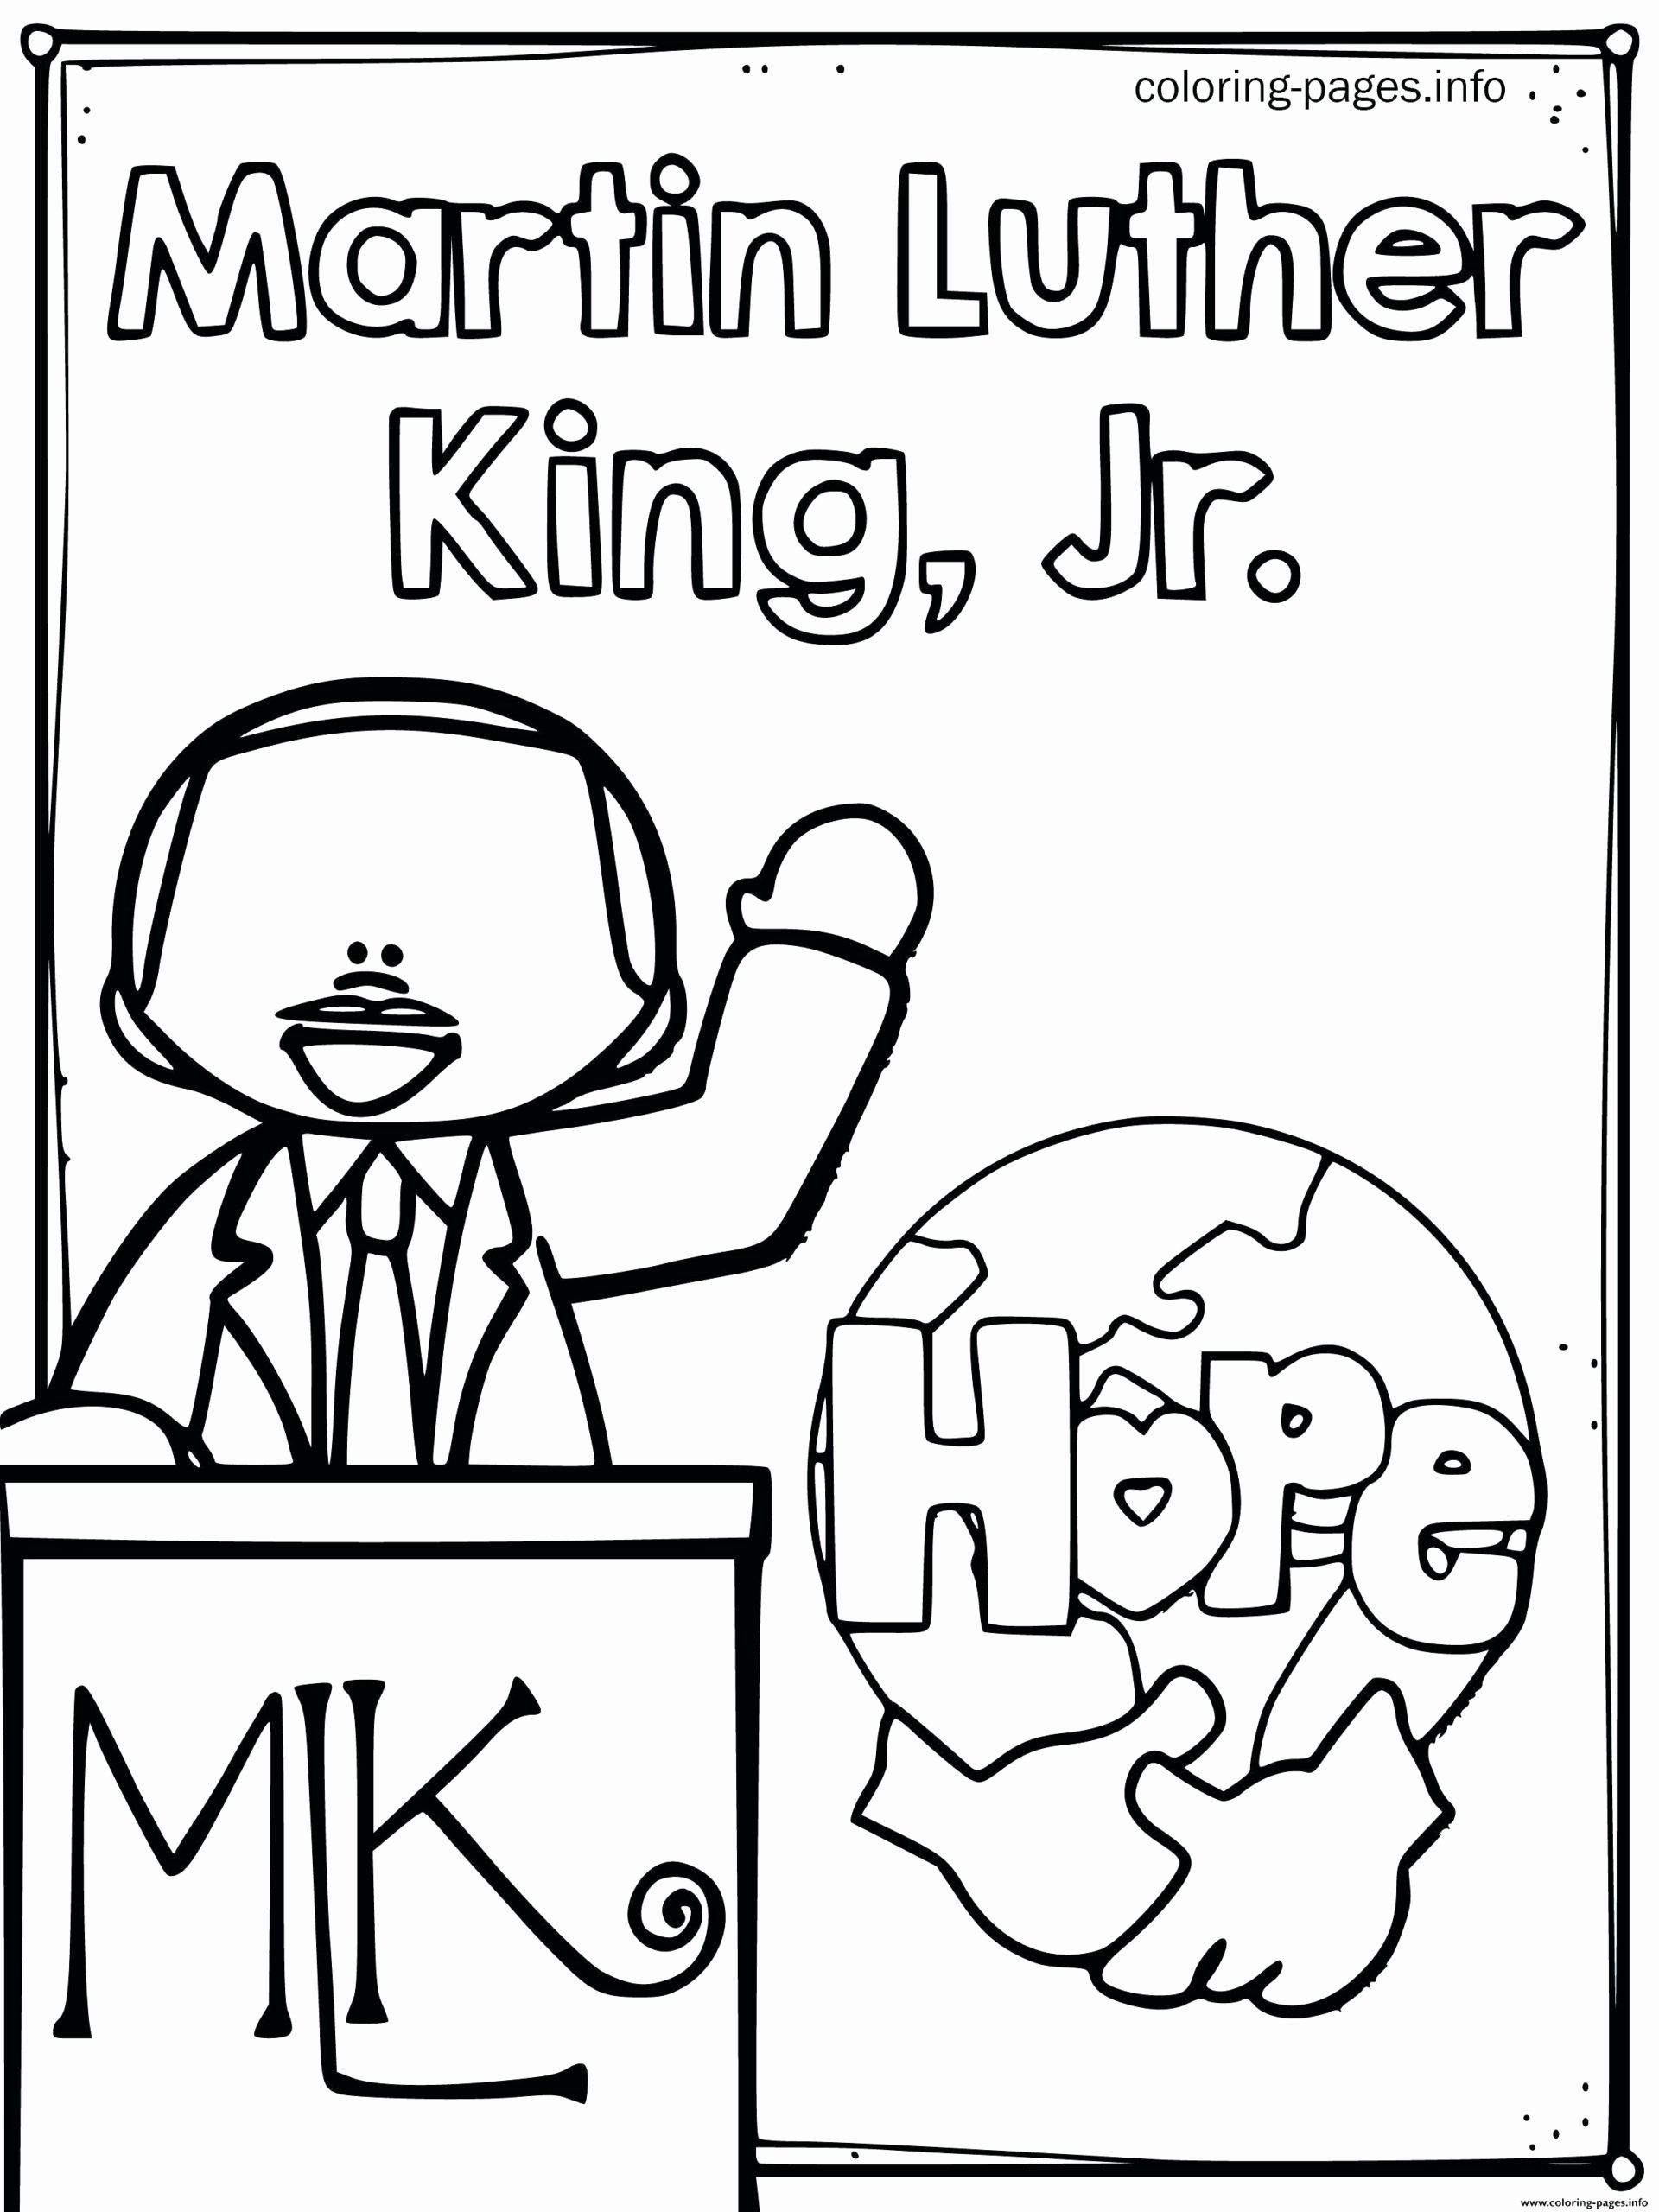 Martin Luther King Worksheets for Preschoolers Inspirational De6a Ec0303e01edfeae820b3b1 Coloring Printable Mlk Day